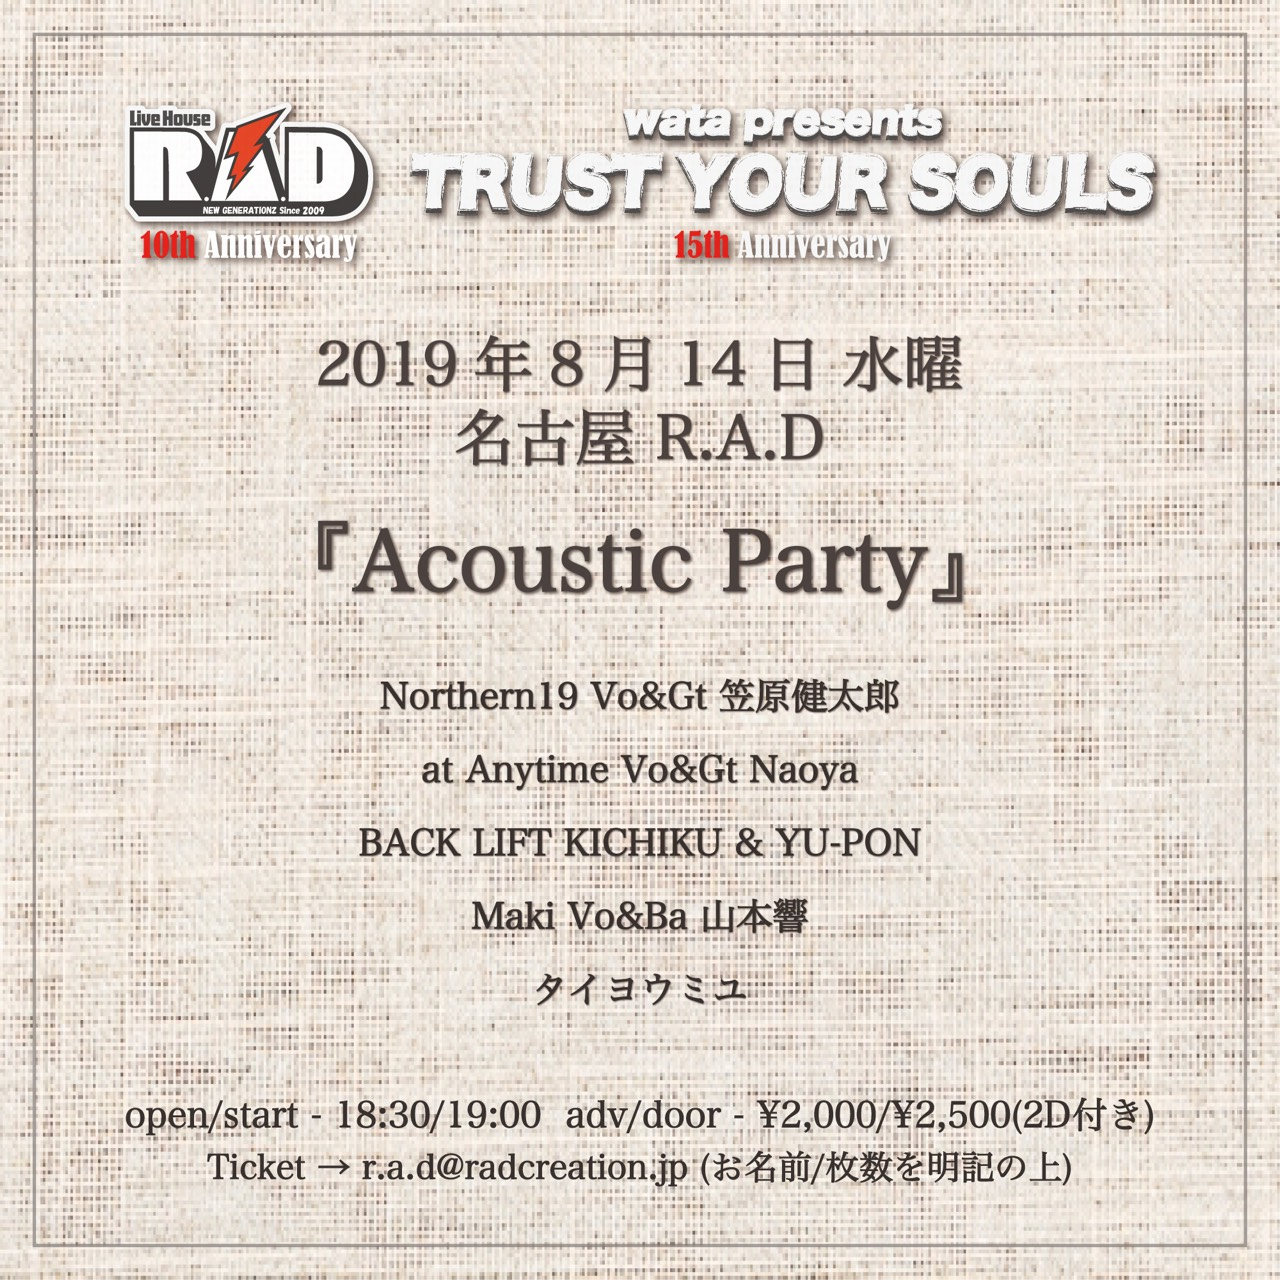 wata presents TRUST YOUR SOULS -15th Anniversary-「Acoutic Party」 R.A.D 10th Anniversary